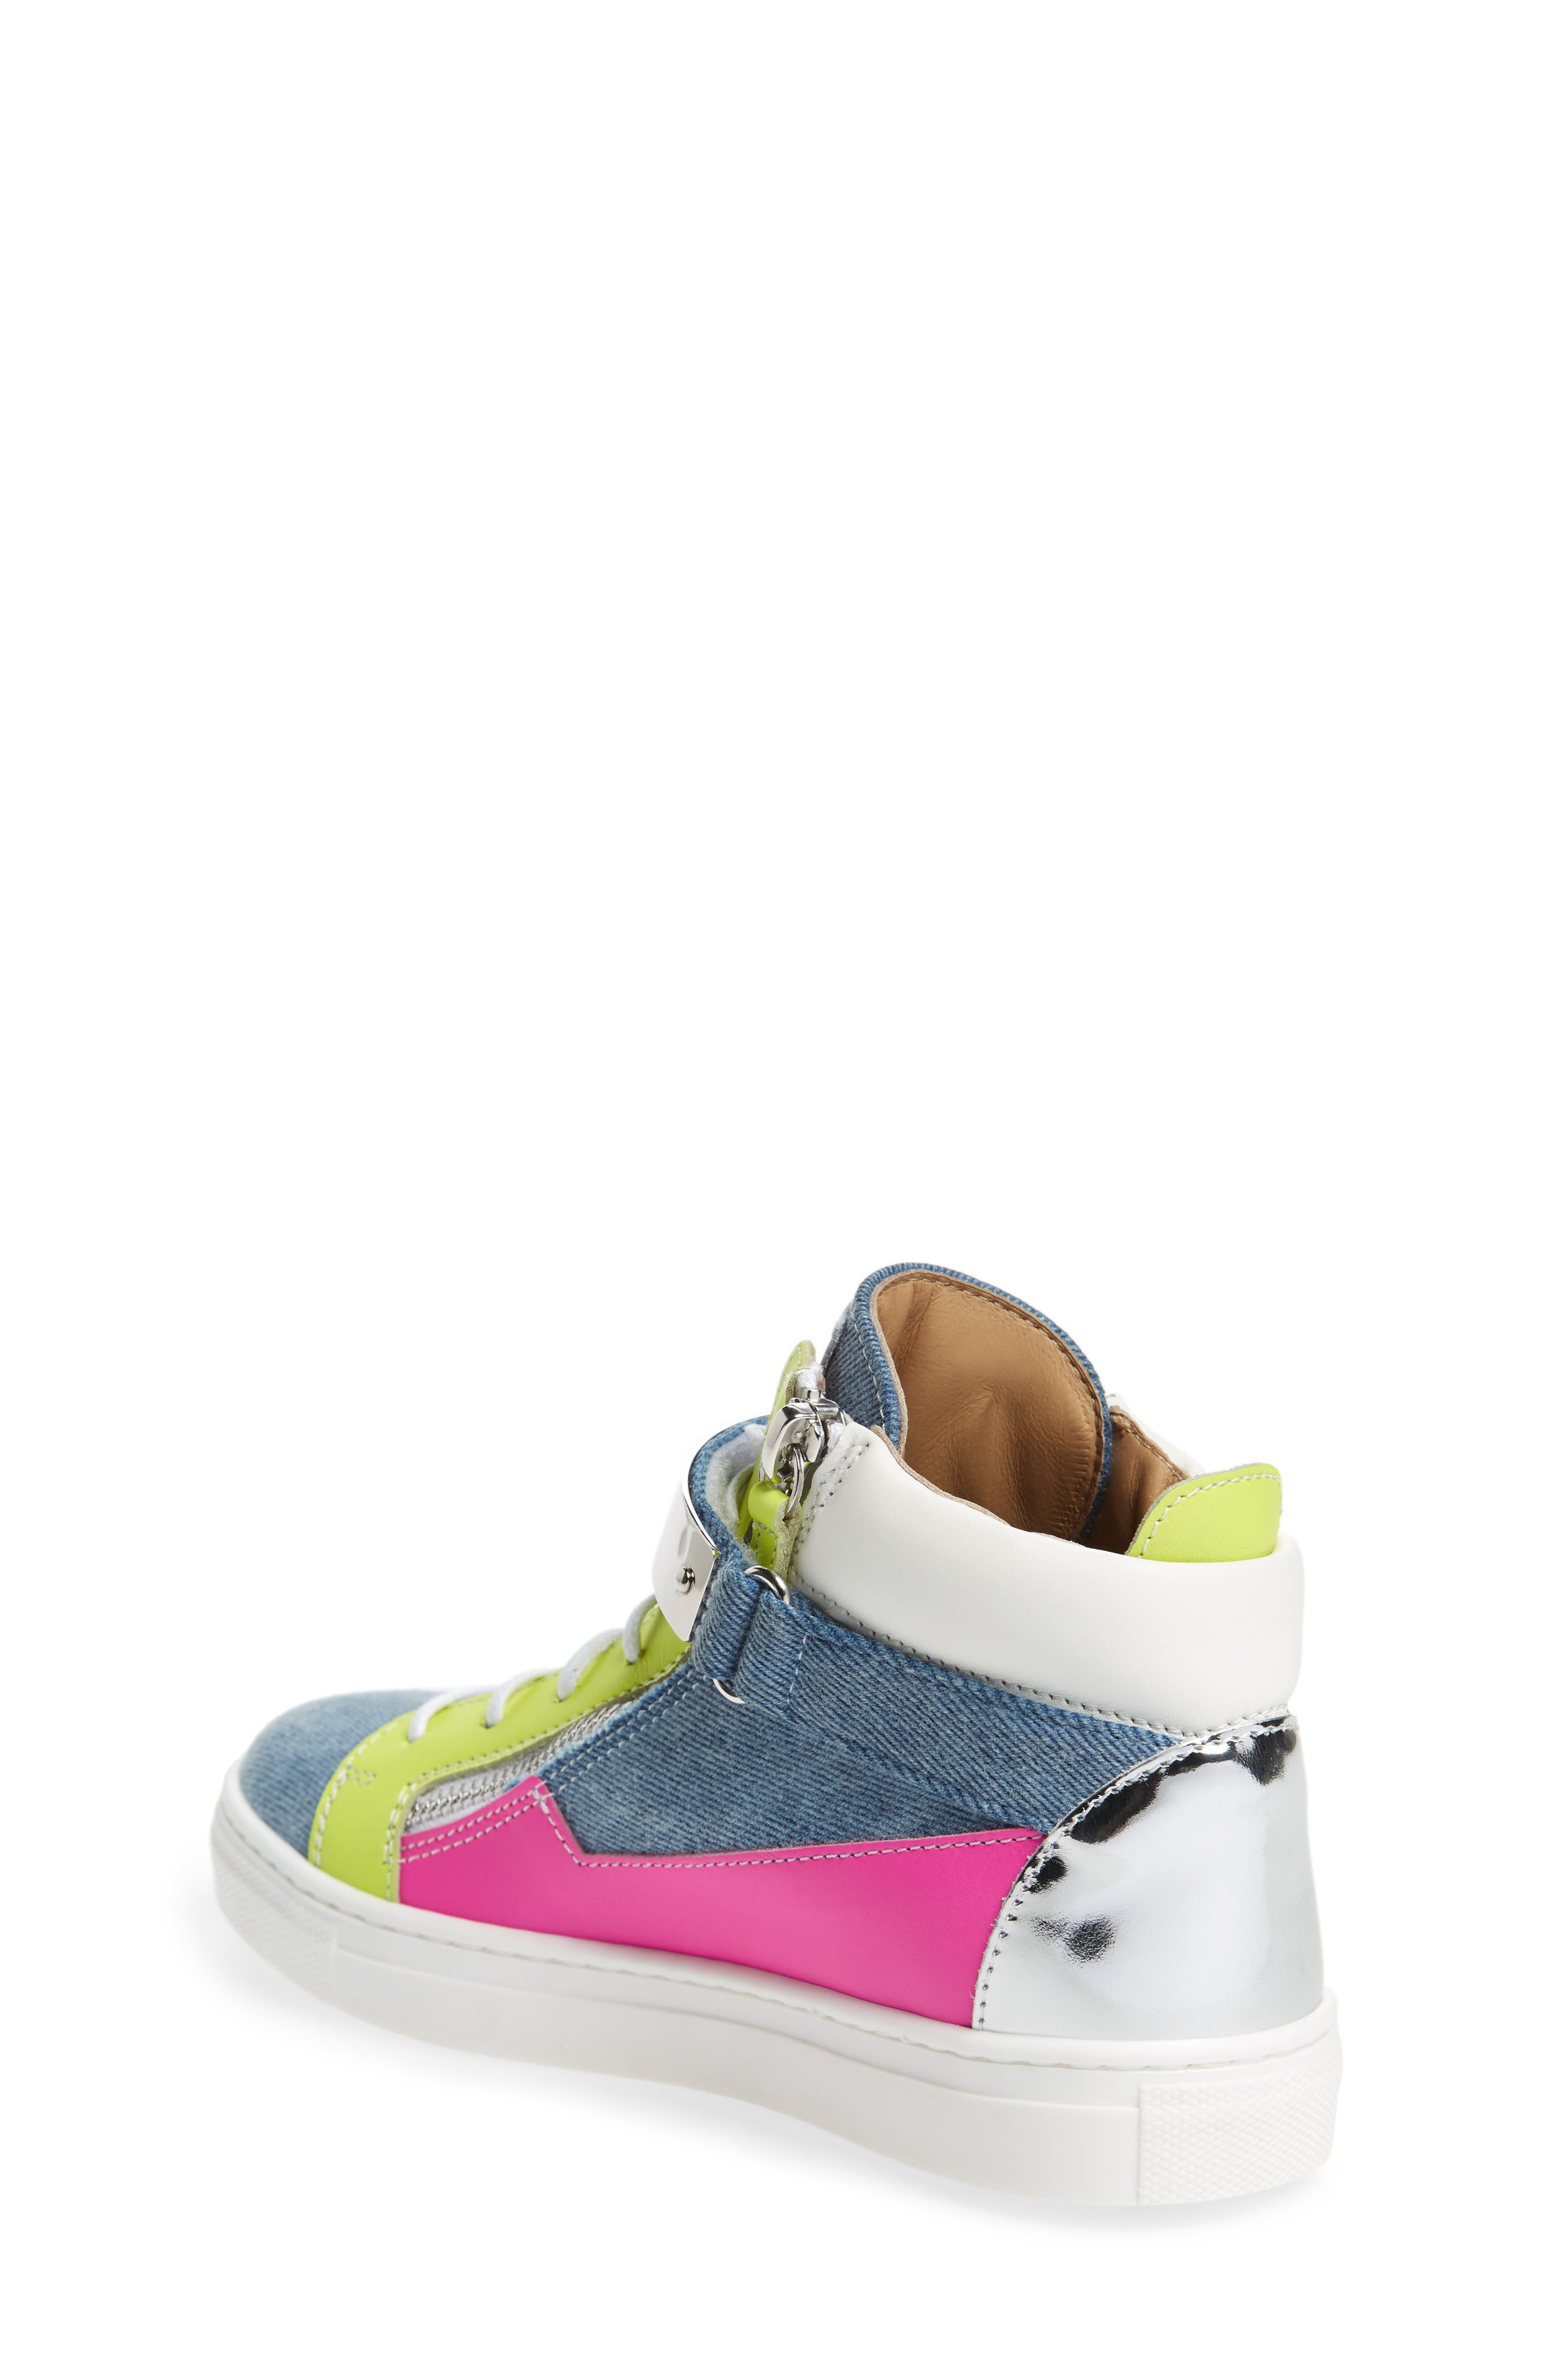 London High Top Sneaker,                             Alternate thumbnail 2, color,                             Multi